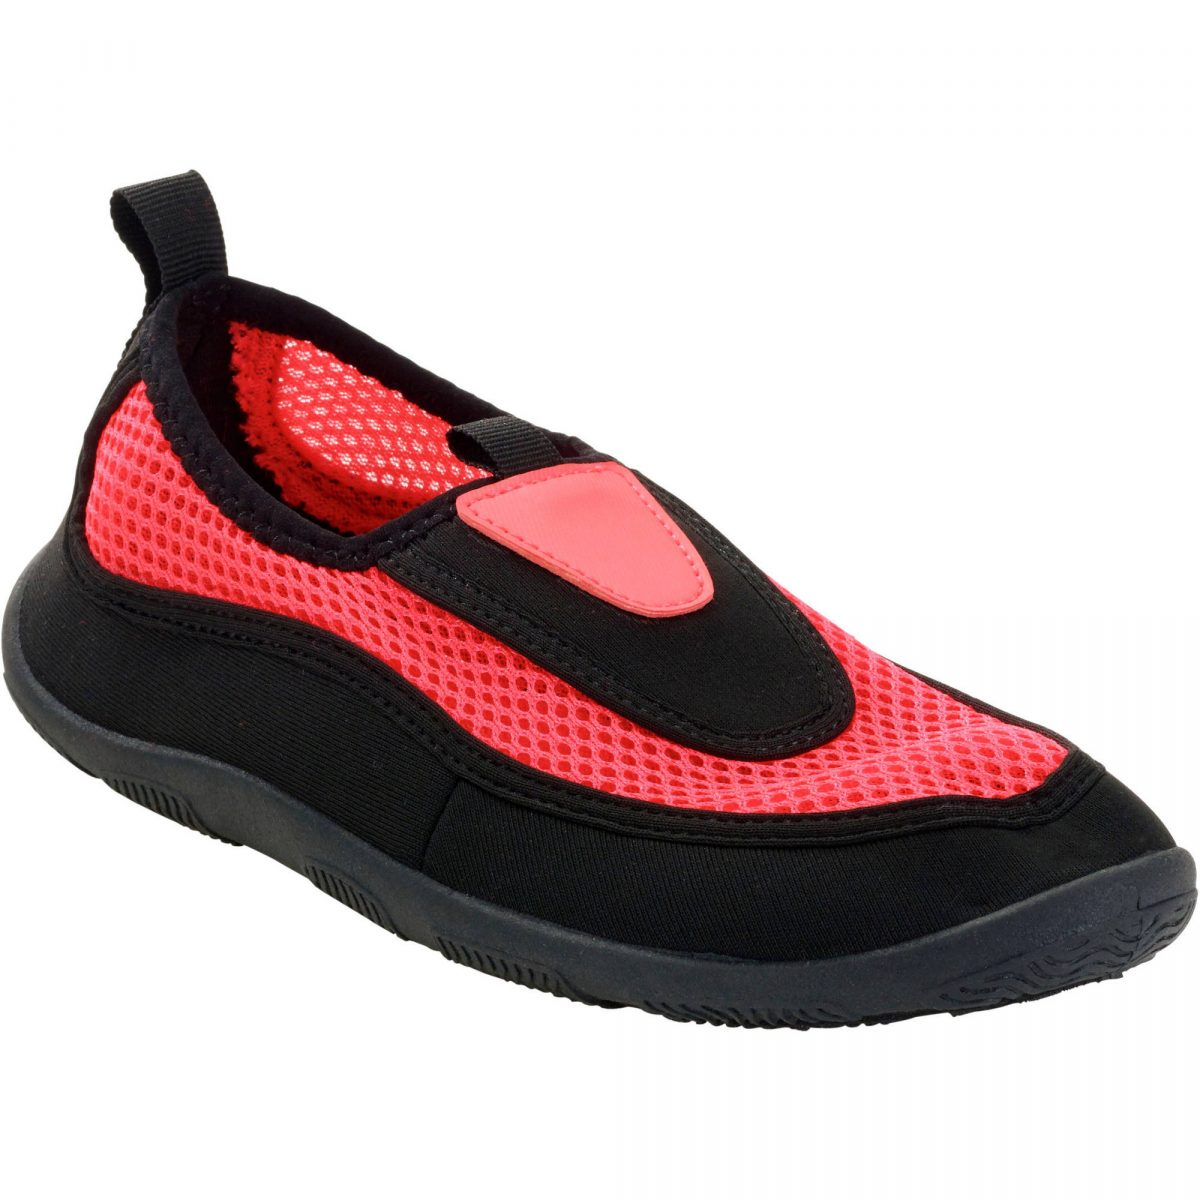 Women's Essential Aqua Beach Shoes By Walmart, Water Shoes